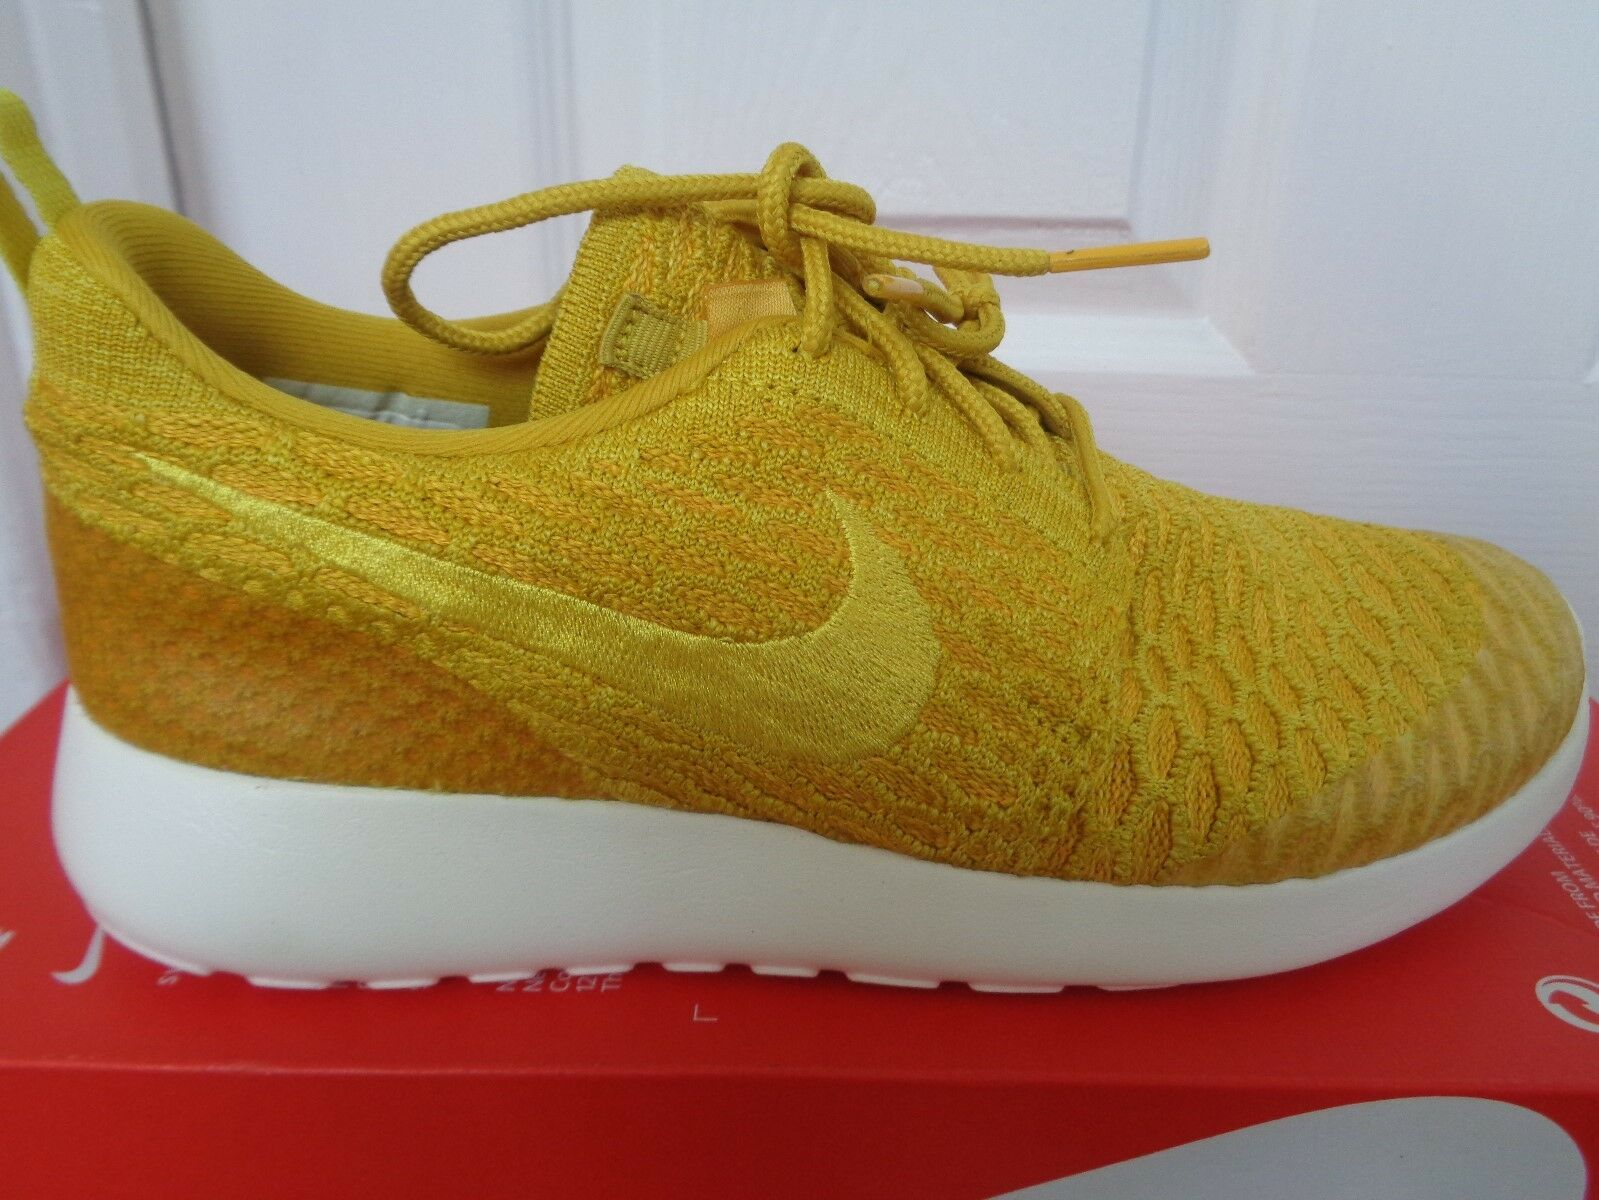 Nike Roshe one Flyknit femmes  uk trainers Baskets 704927 701 uk  4 eu 37.5 us 6.5 NEW b09792